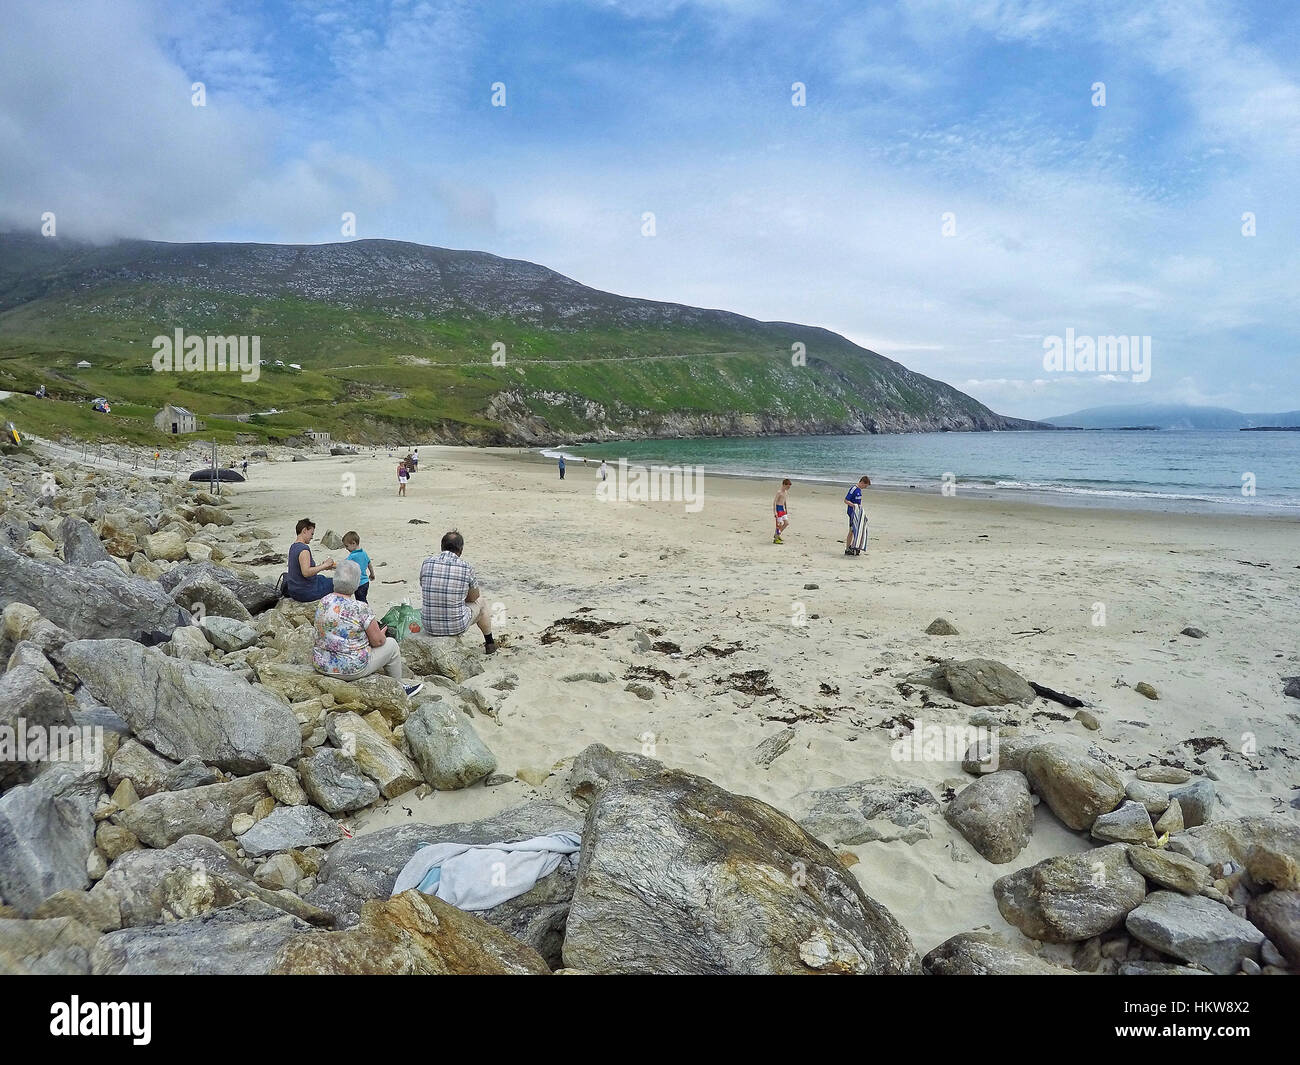 Remote secluded beach on the west coast of Ireland - Stock Image